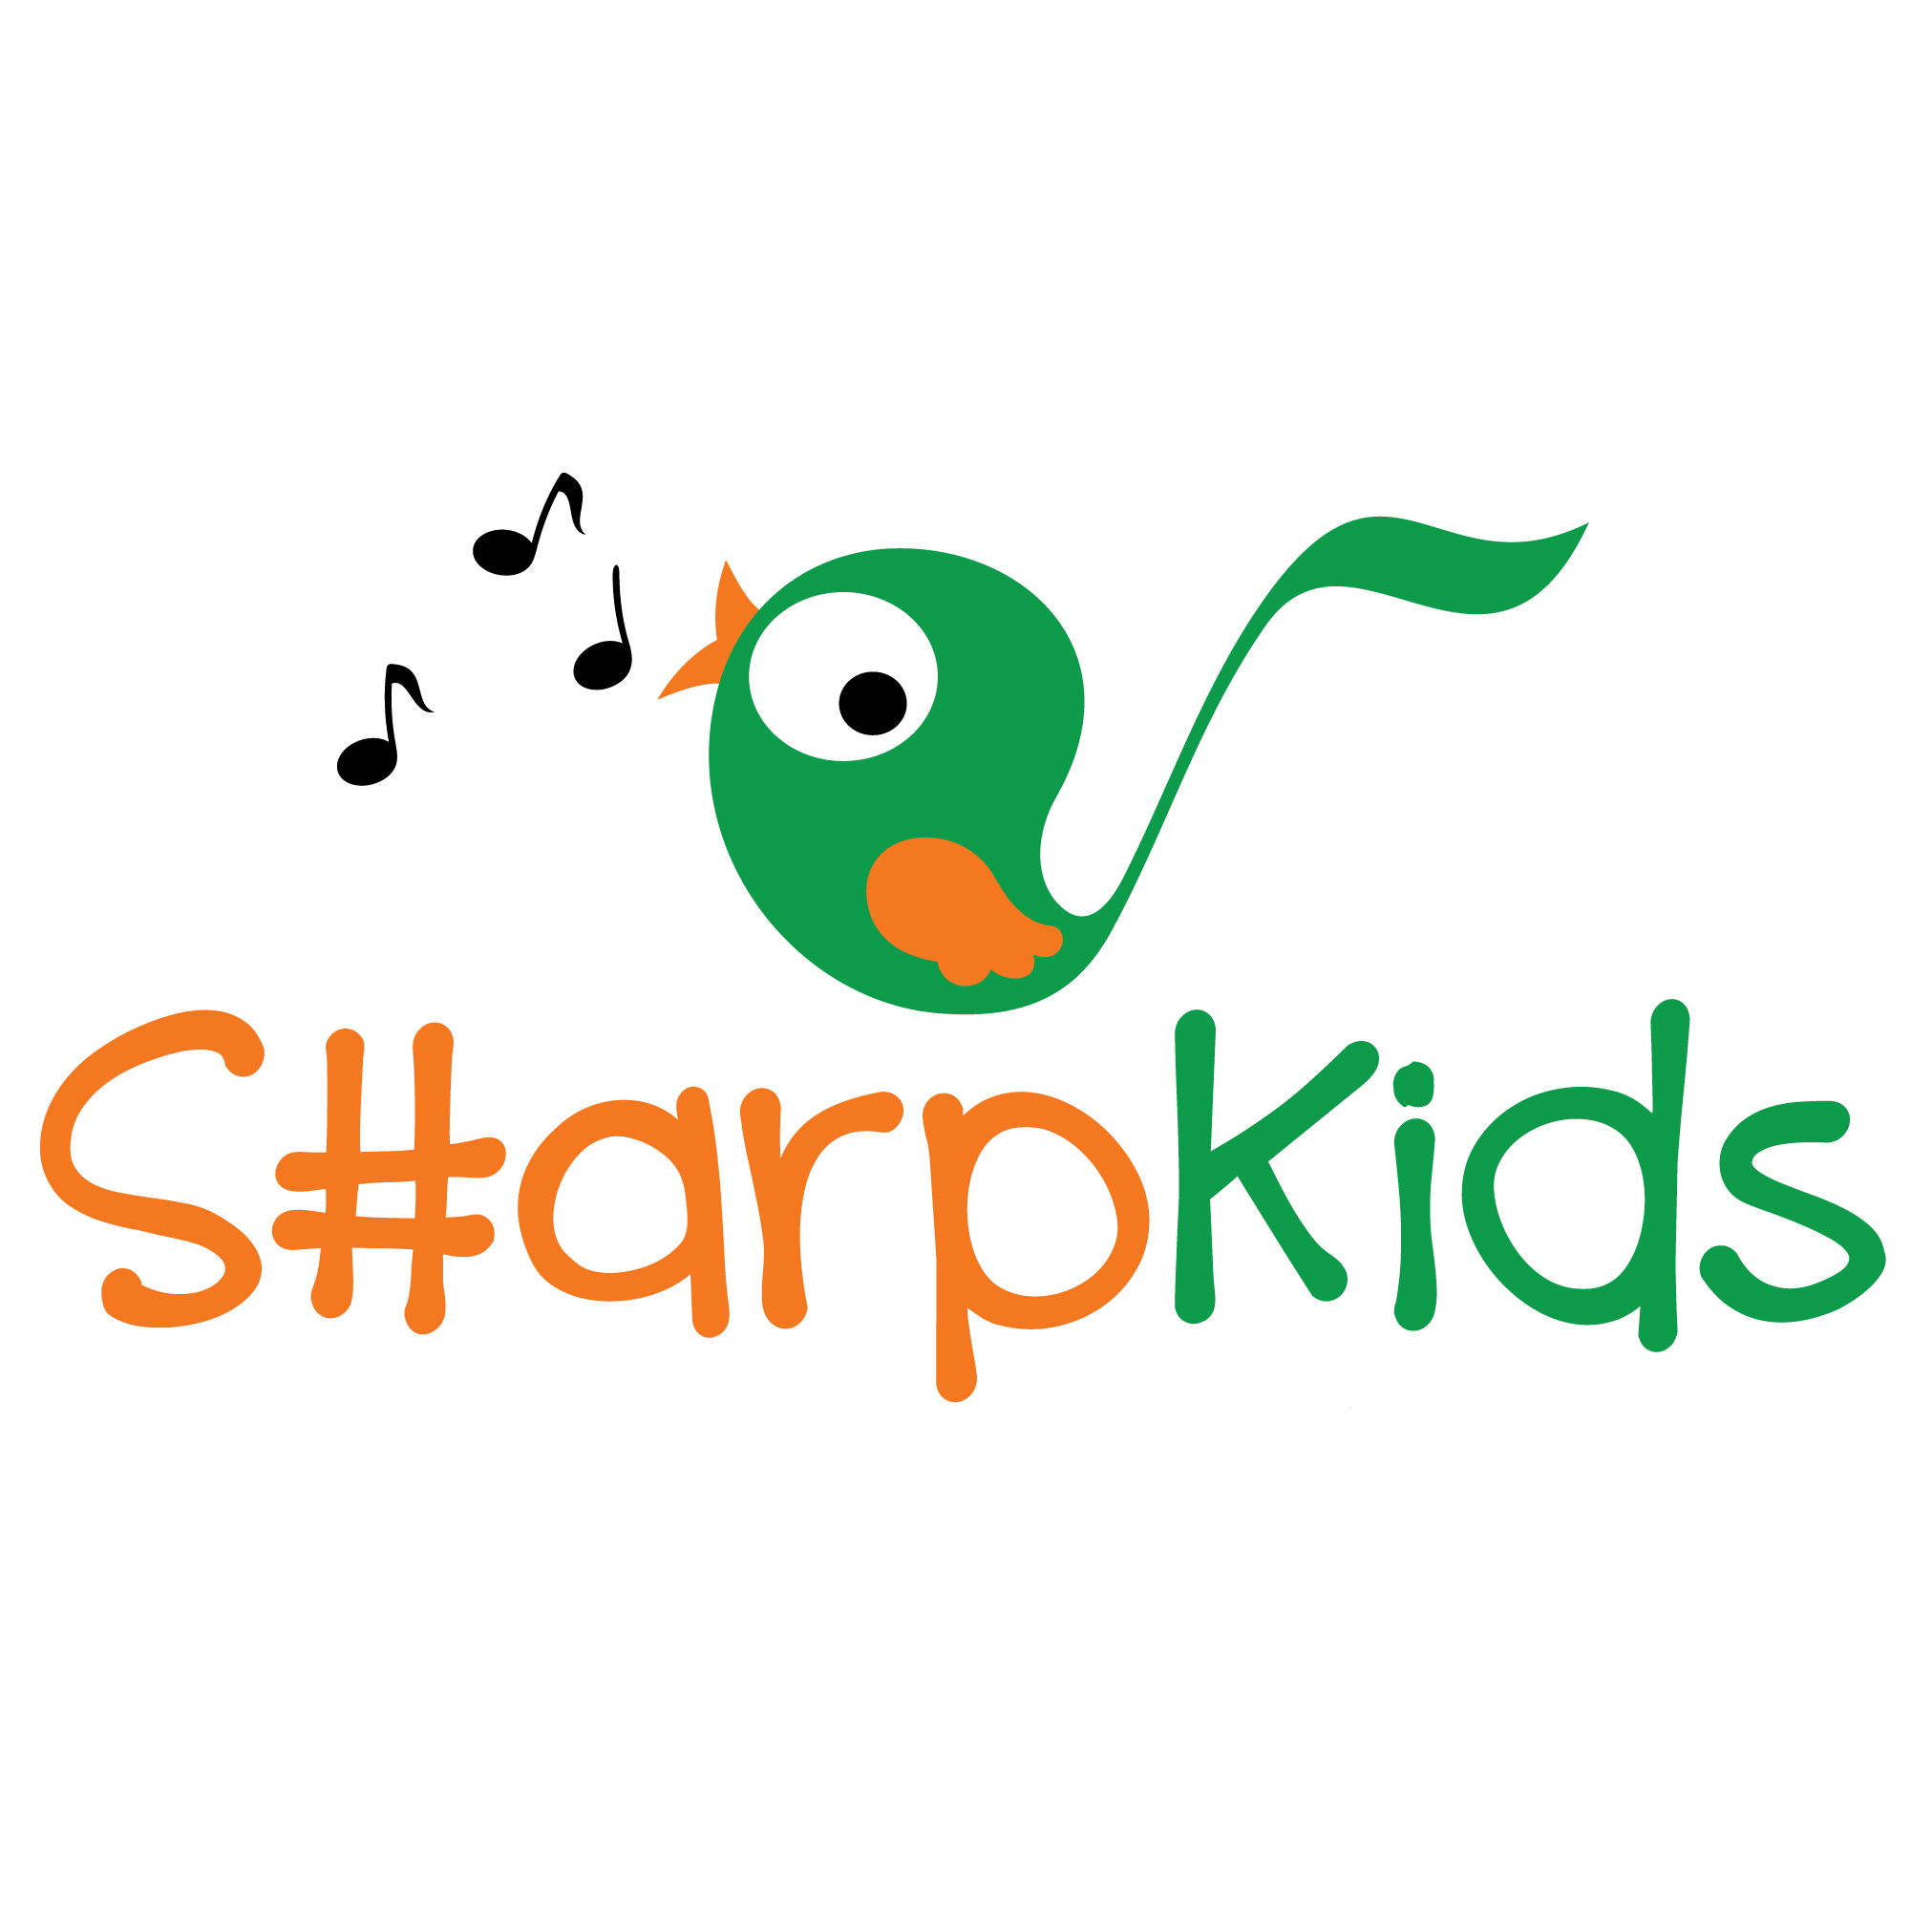 #Sharp Kids